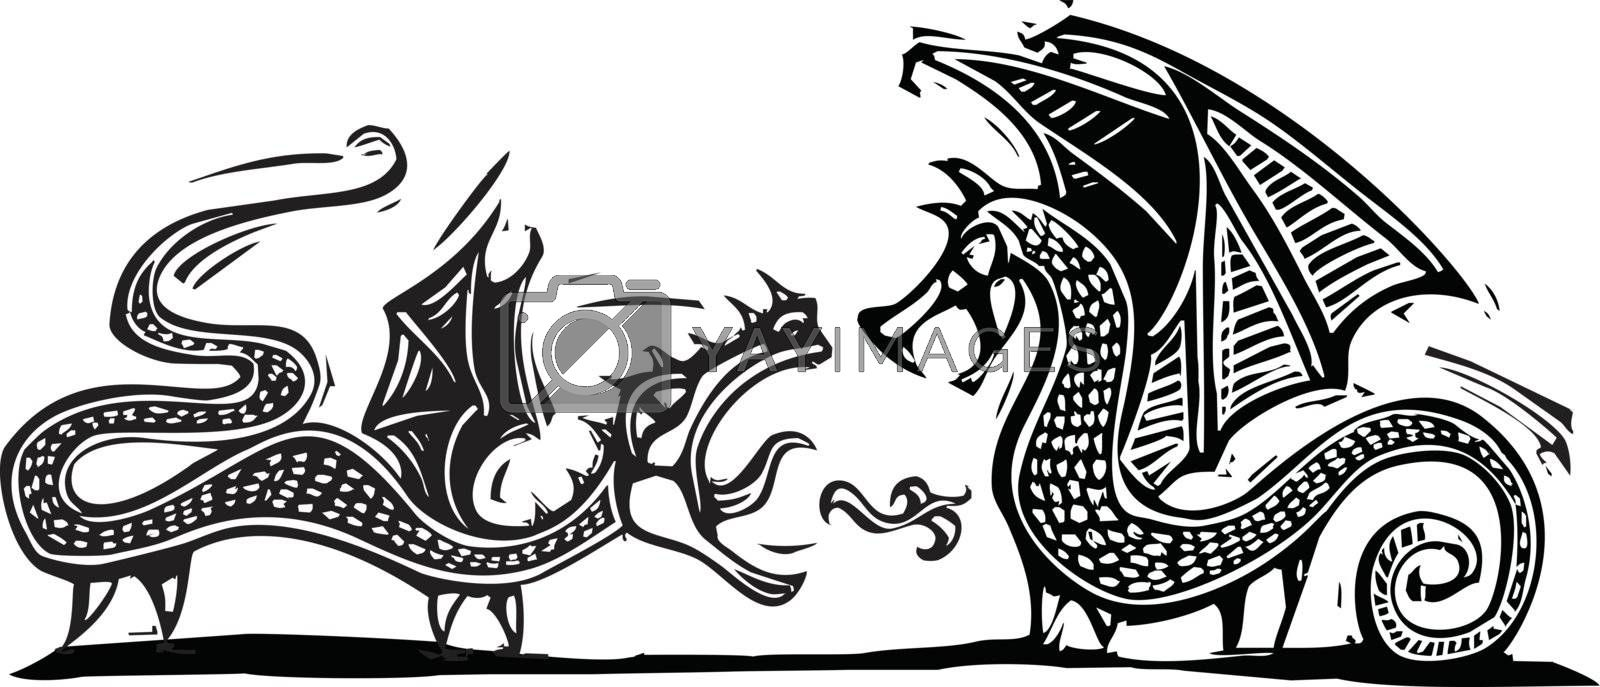 Woodcut expressionist style image of two fighting dragons